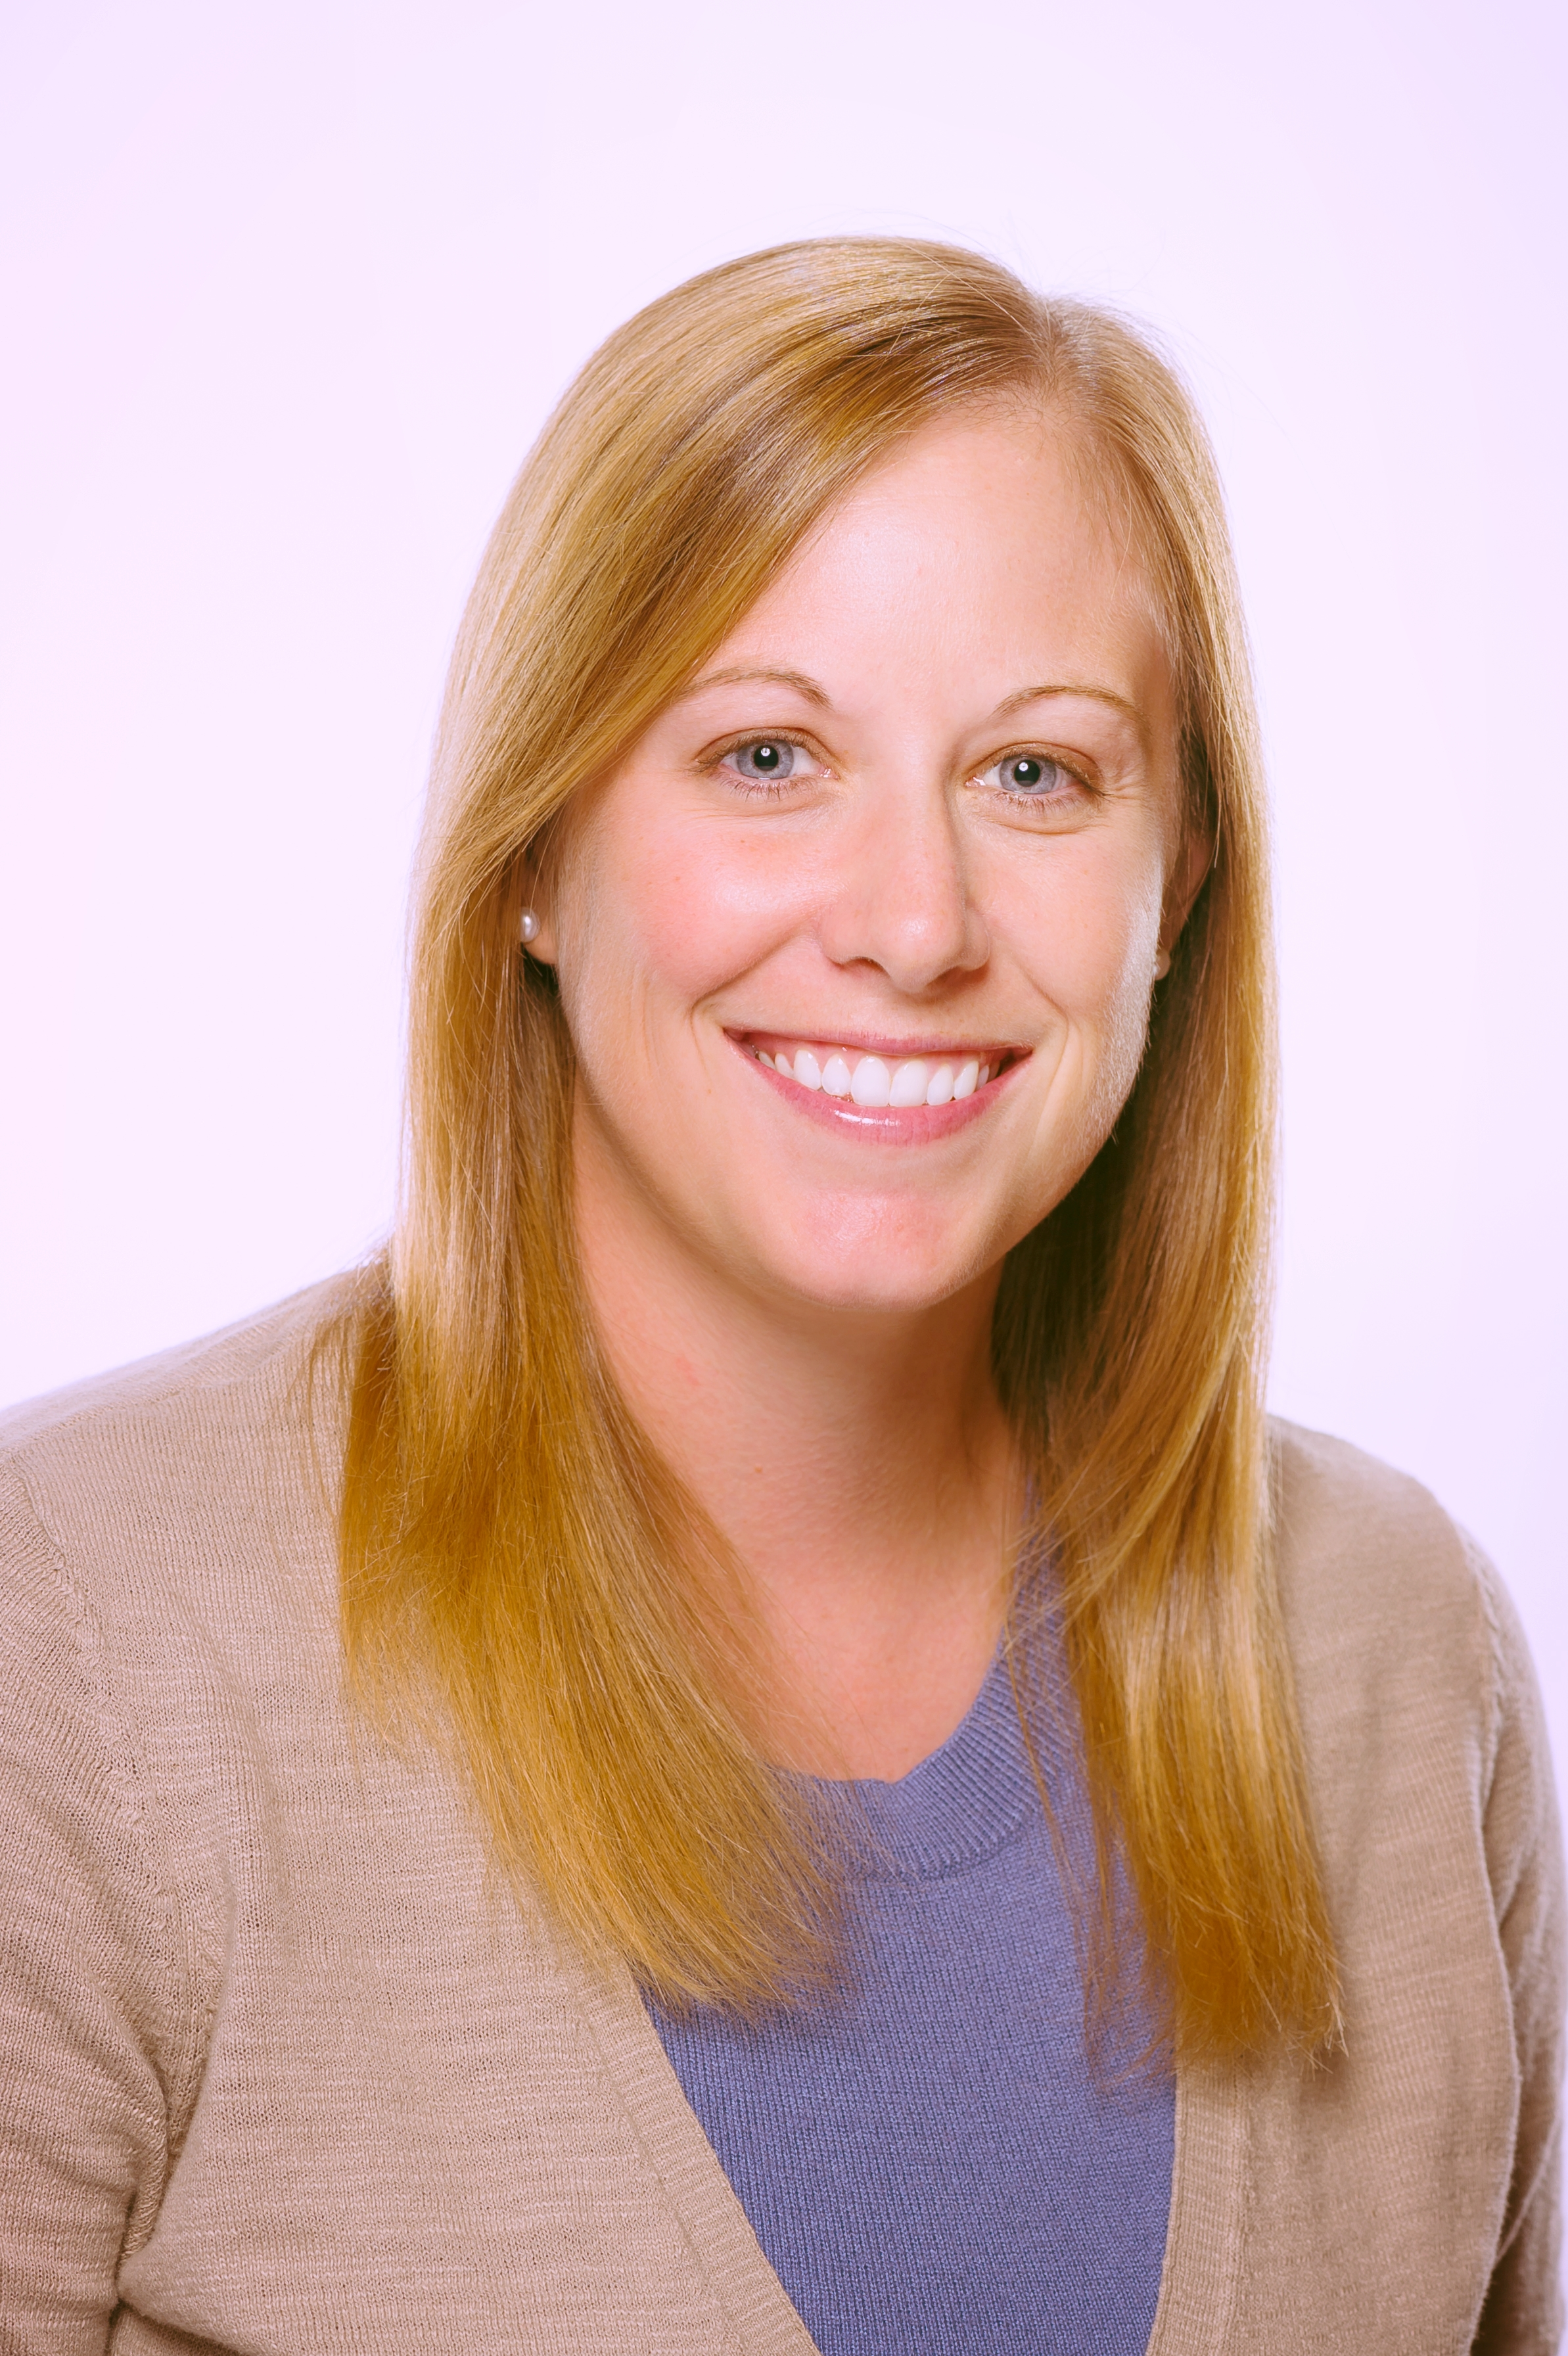 Financial Planner Marie Freemyer, Founding Partner of True Financial Group